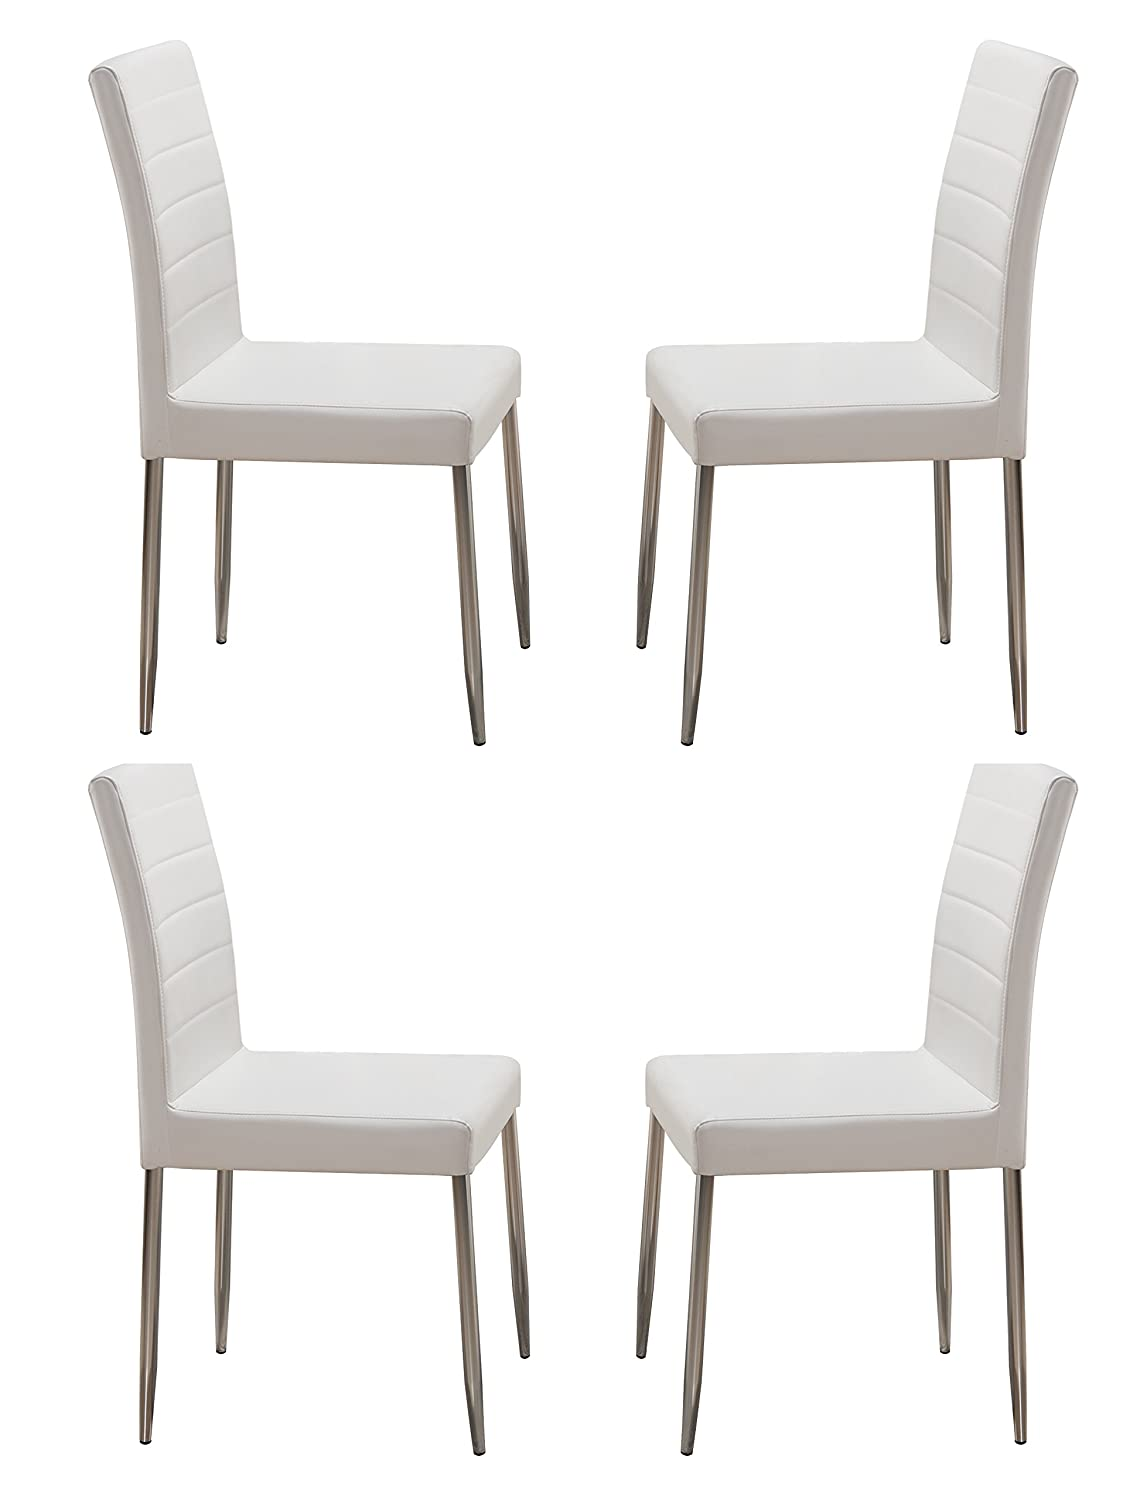 Kings Brand Furniture Parson Chairs with Chrome Legs (Set of 4), White